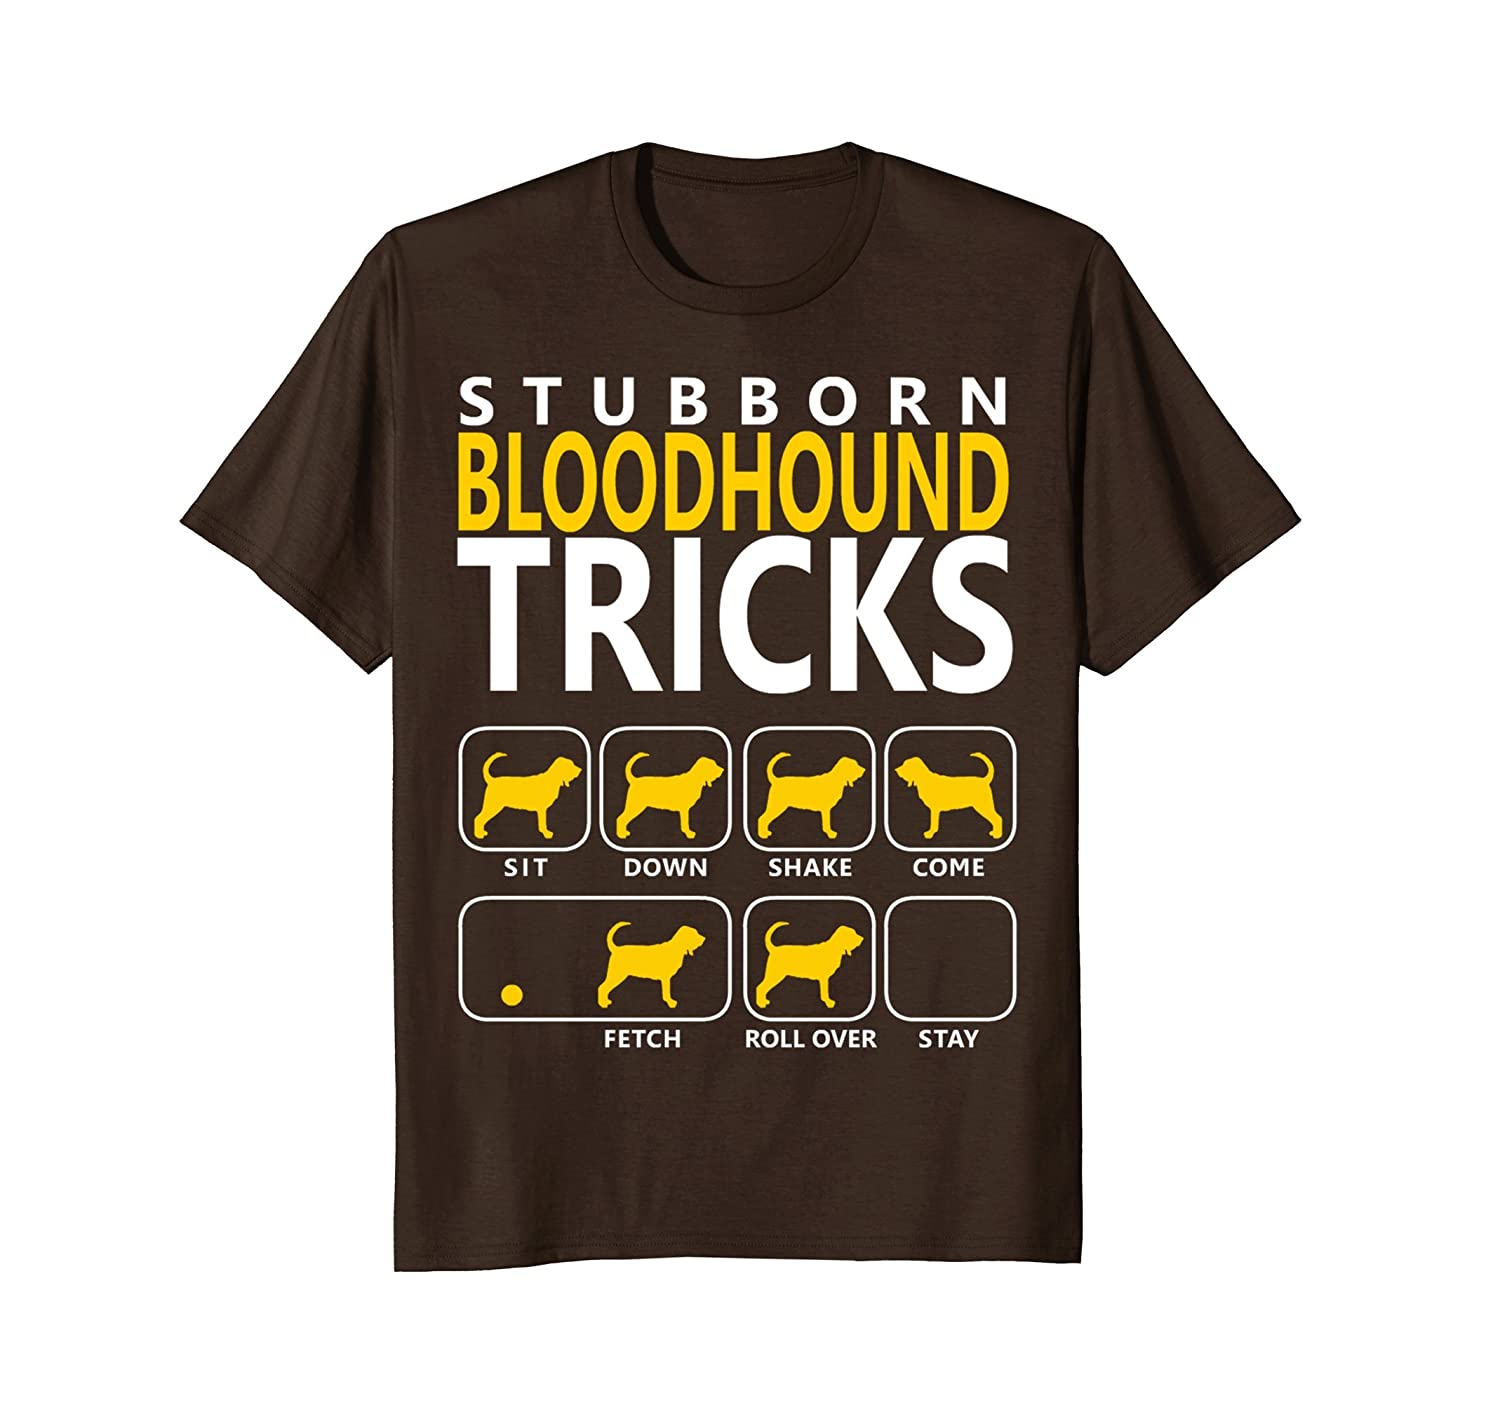 Bloodhound shirt | Stubborn Bloodhound Tricks Dog T shirt-mt